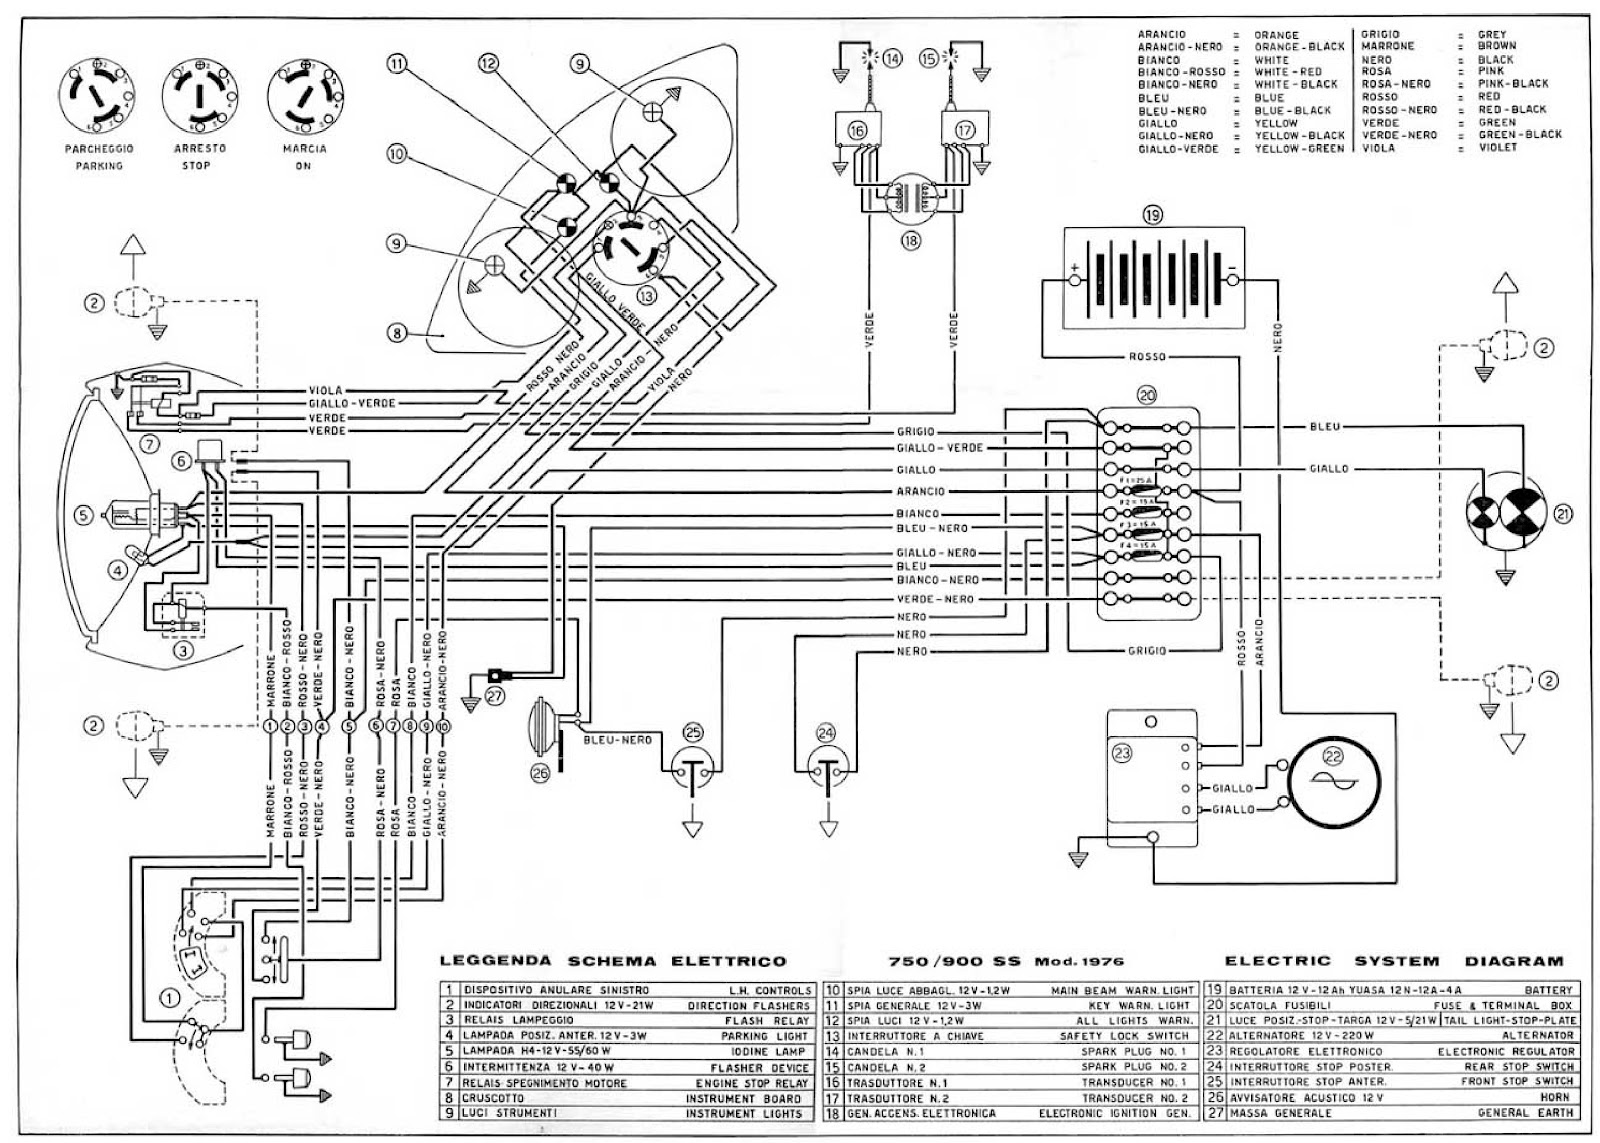 Ducati_1976%20750-900SS%20Wiring%20Diagram-1 Yamaha R Wiring Diagram Ignition on smart car, harley electronic, gm hei,